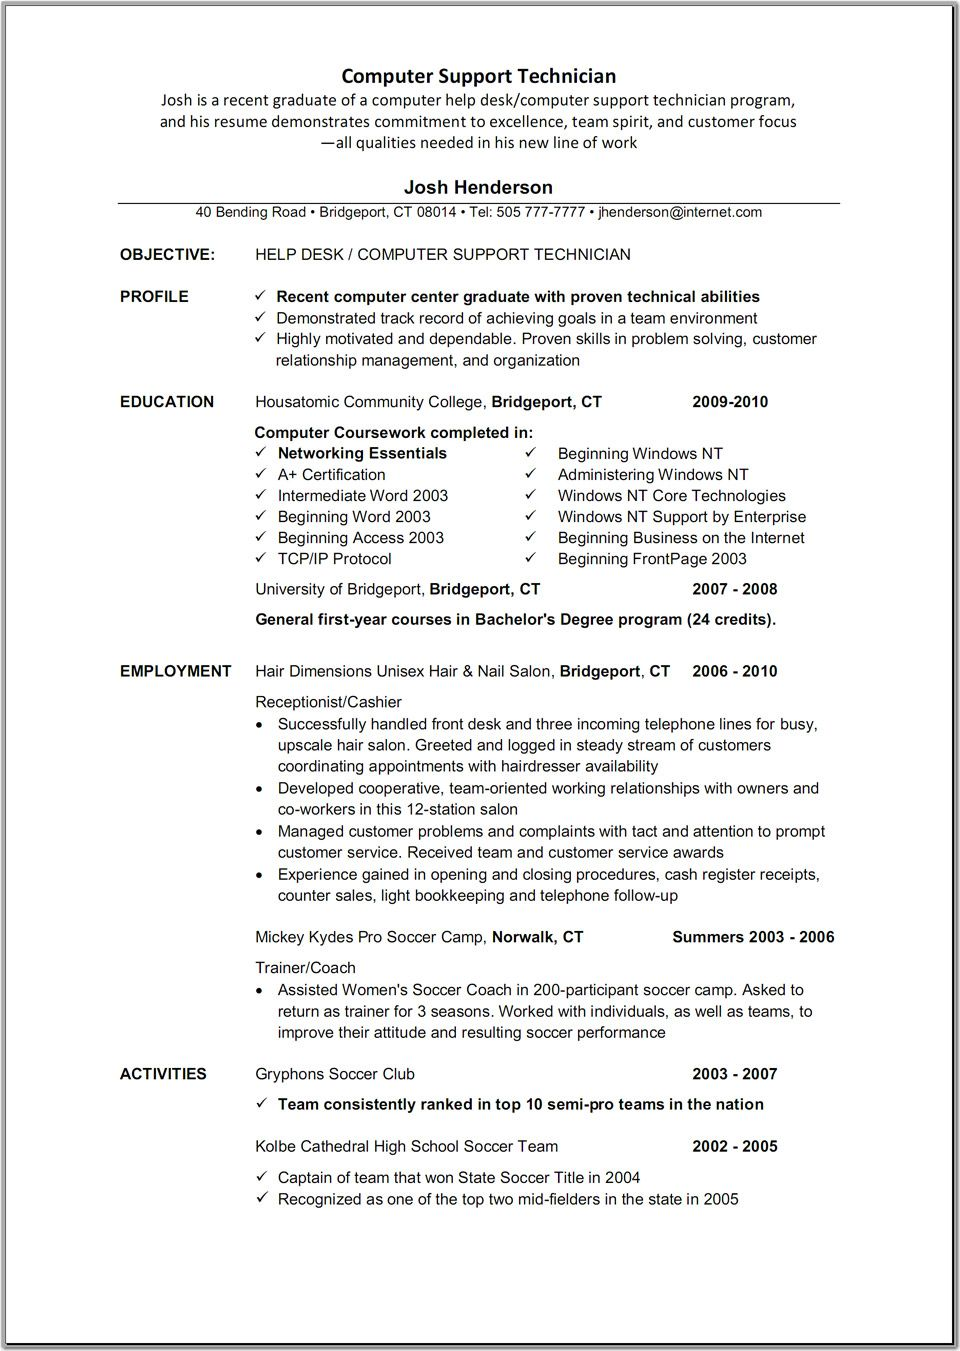 Pin By Pete On Sam Pinterest Job Resume Format Job Resume And